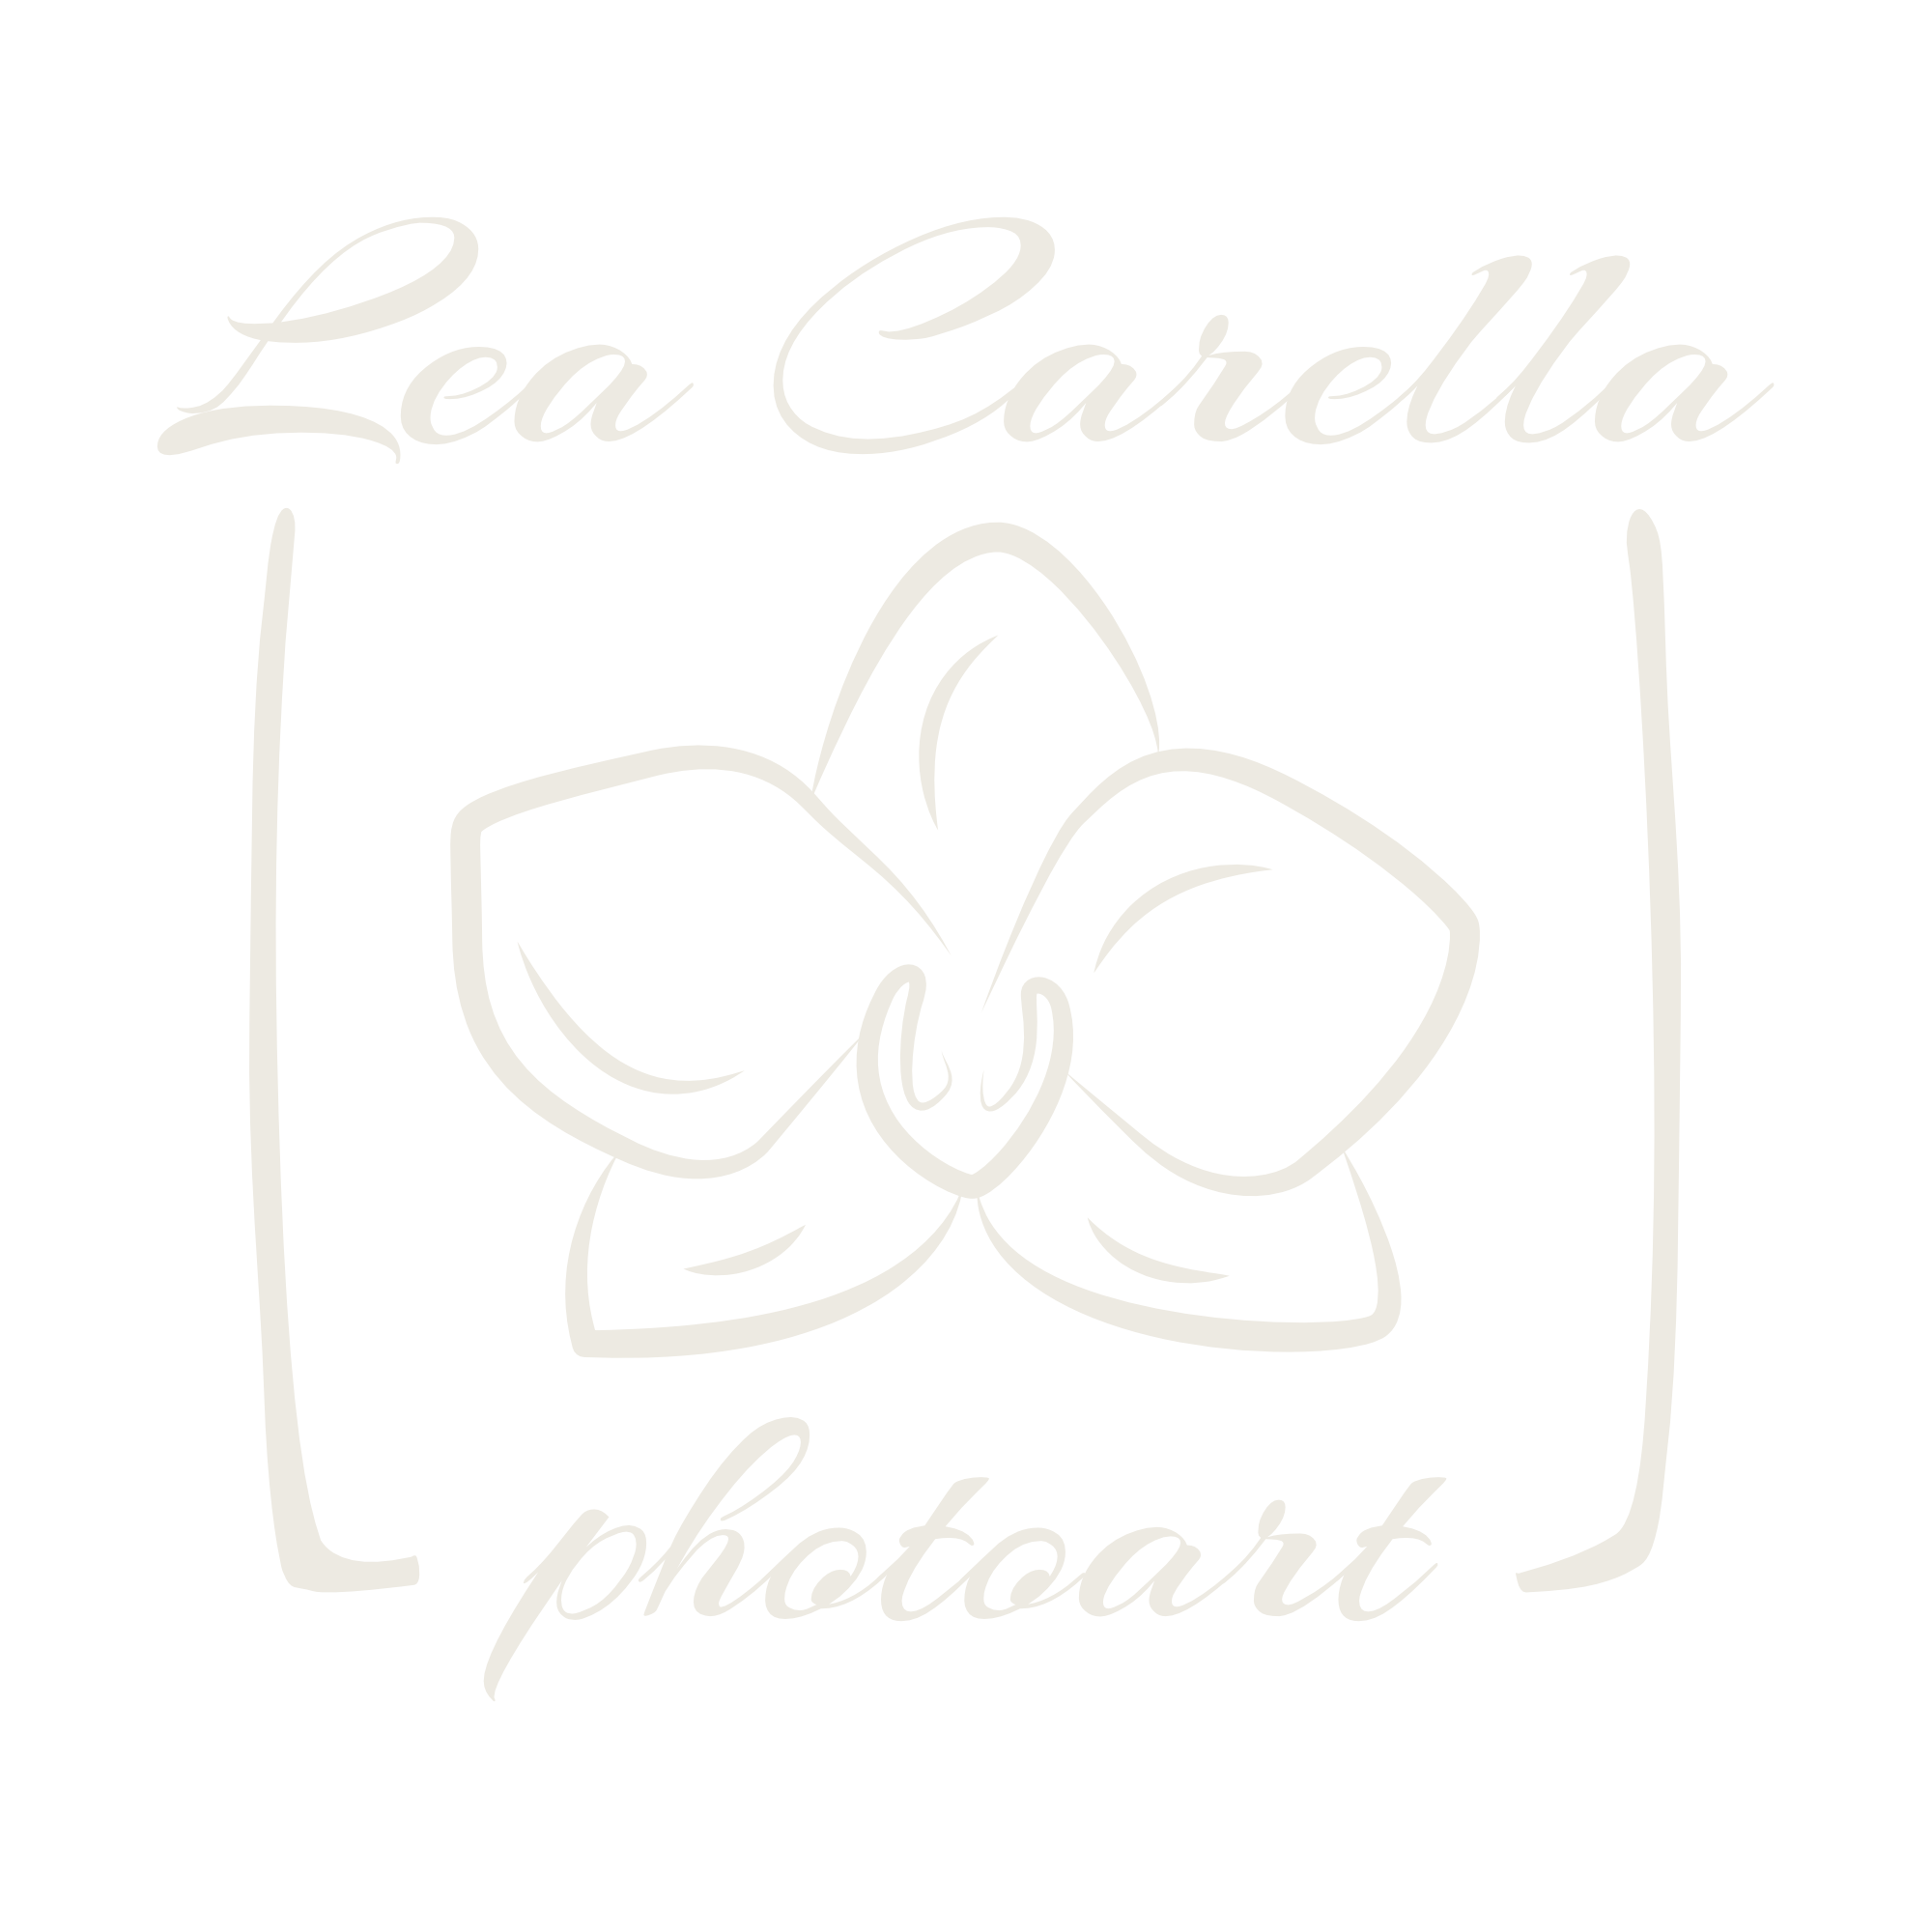 Lea Carella Photoart